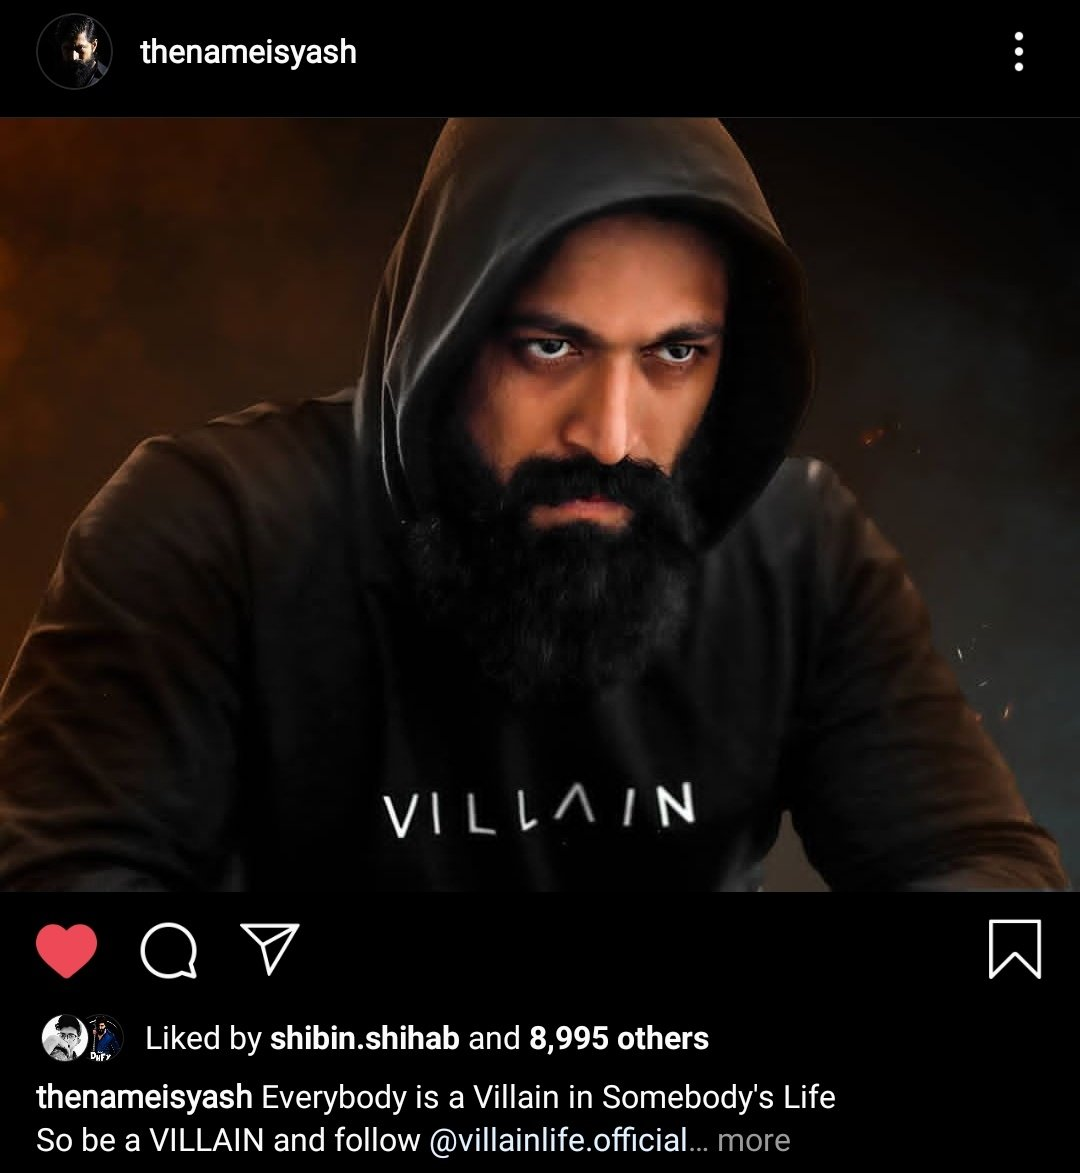 . @TheNameIsYash BOSS New Instagram Post😍🔥🔥  Link https://t.co/1f5qAYXK3y  #KGFChapter2 #YashBOSS https://t.co/oeh82NnT38